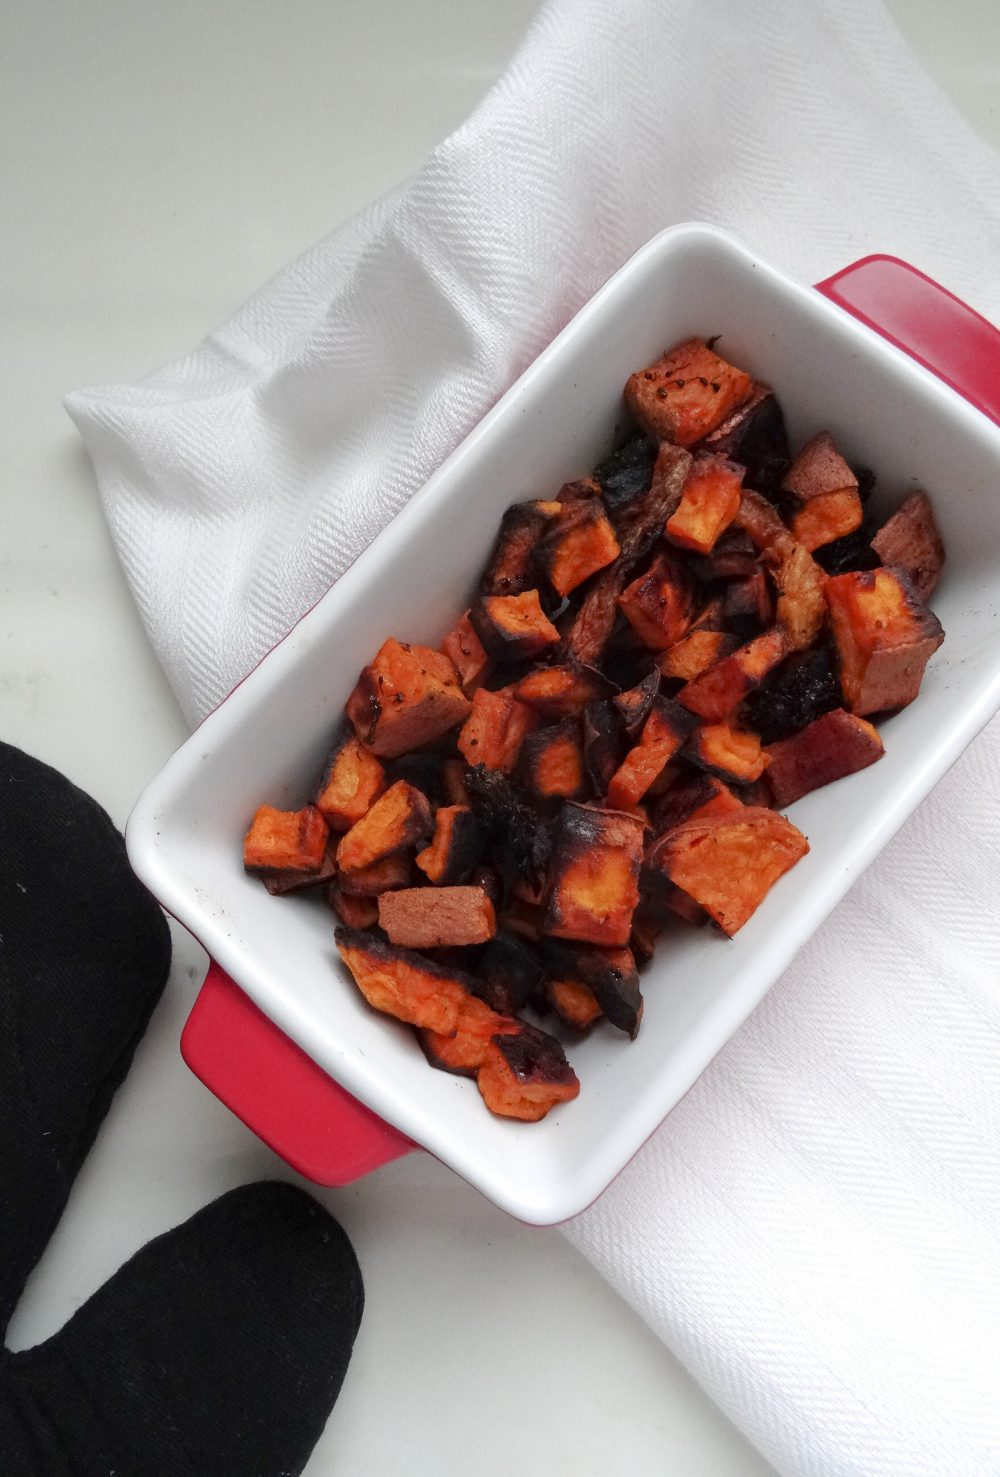 roasted yam and sweet potatoes in red ceramic dish on with white napkin